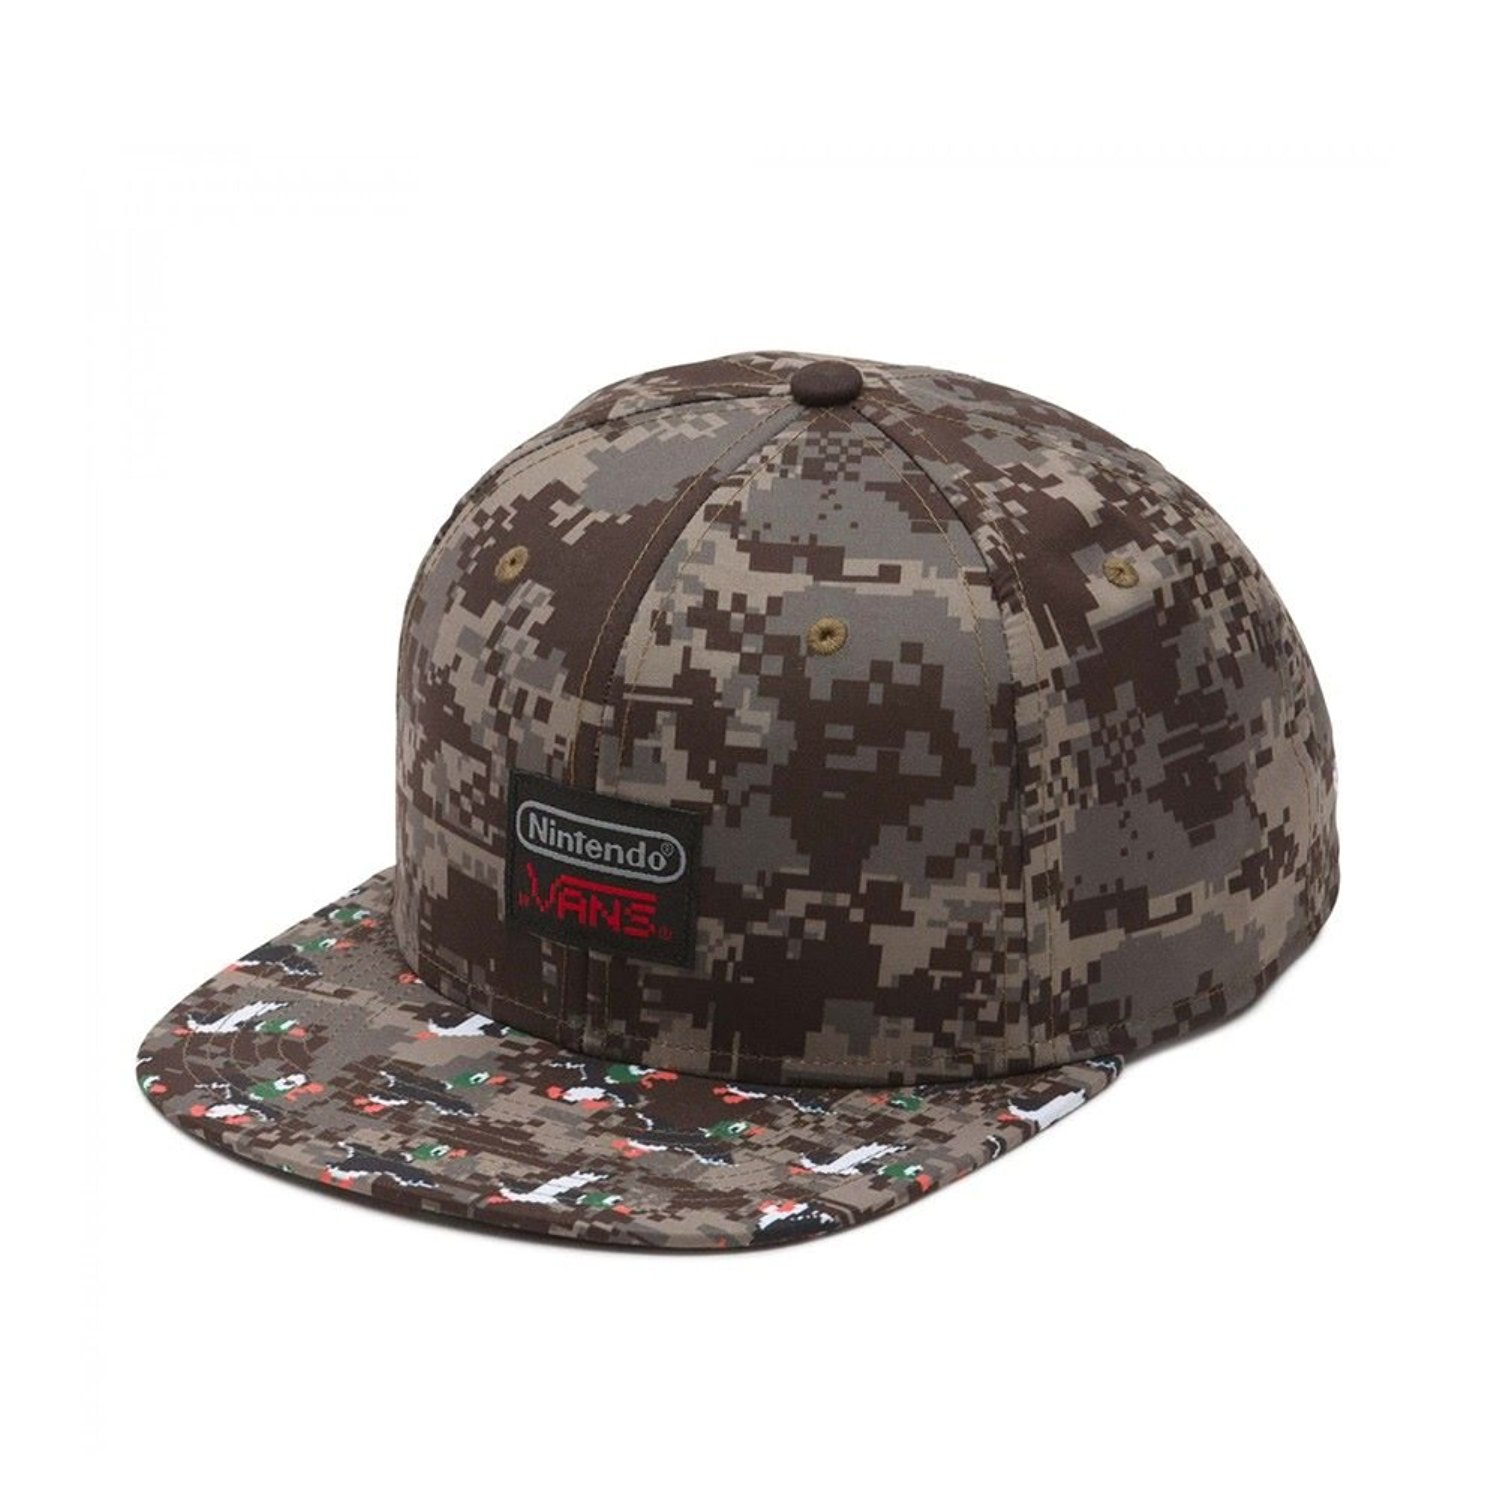 9a9e3375bb356 Get Quotations · VANS x Nintendo Duck Hunt Mens Snapback Hat